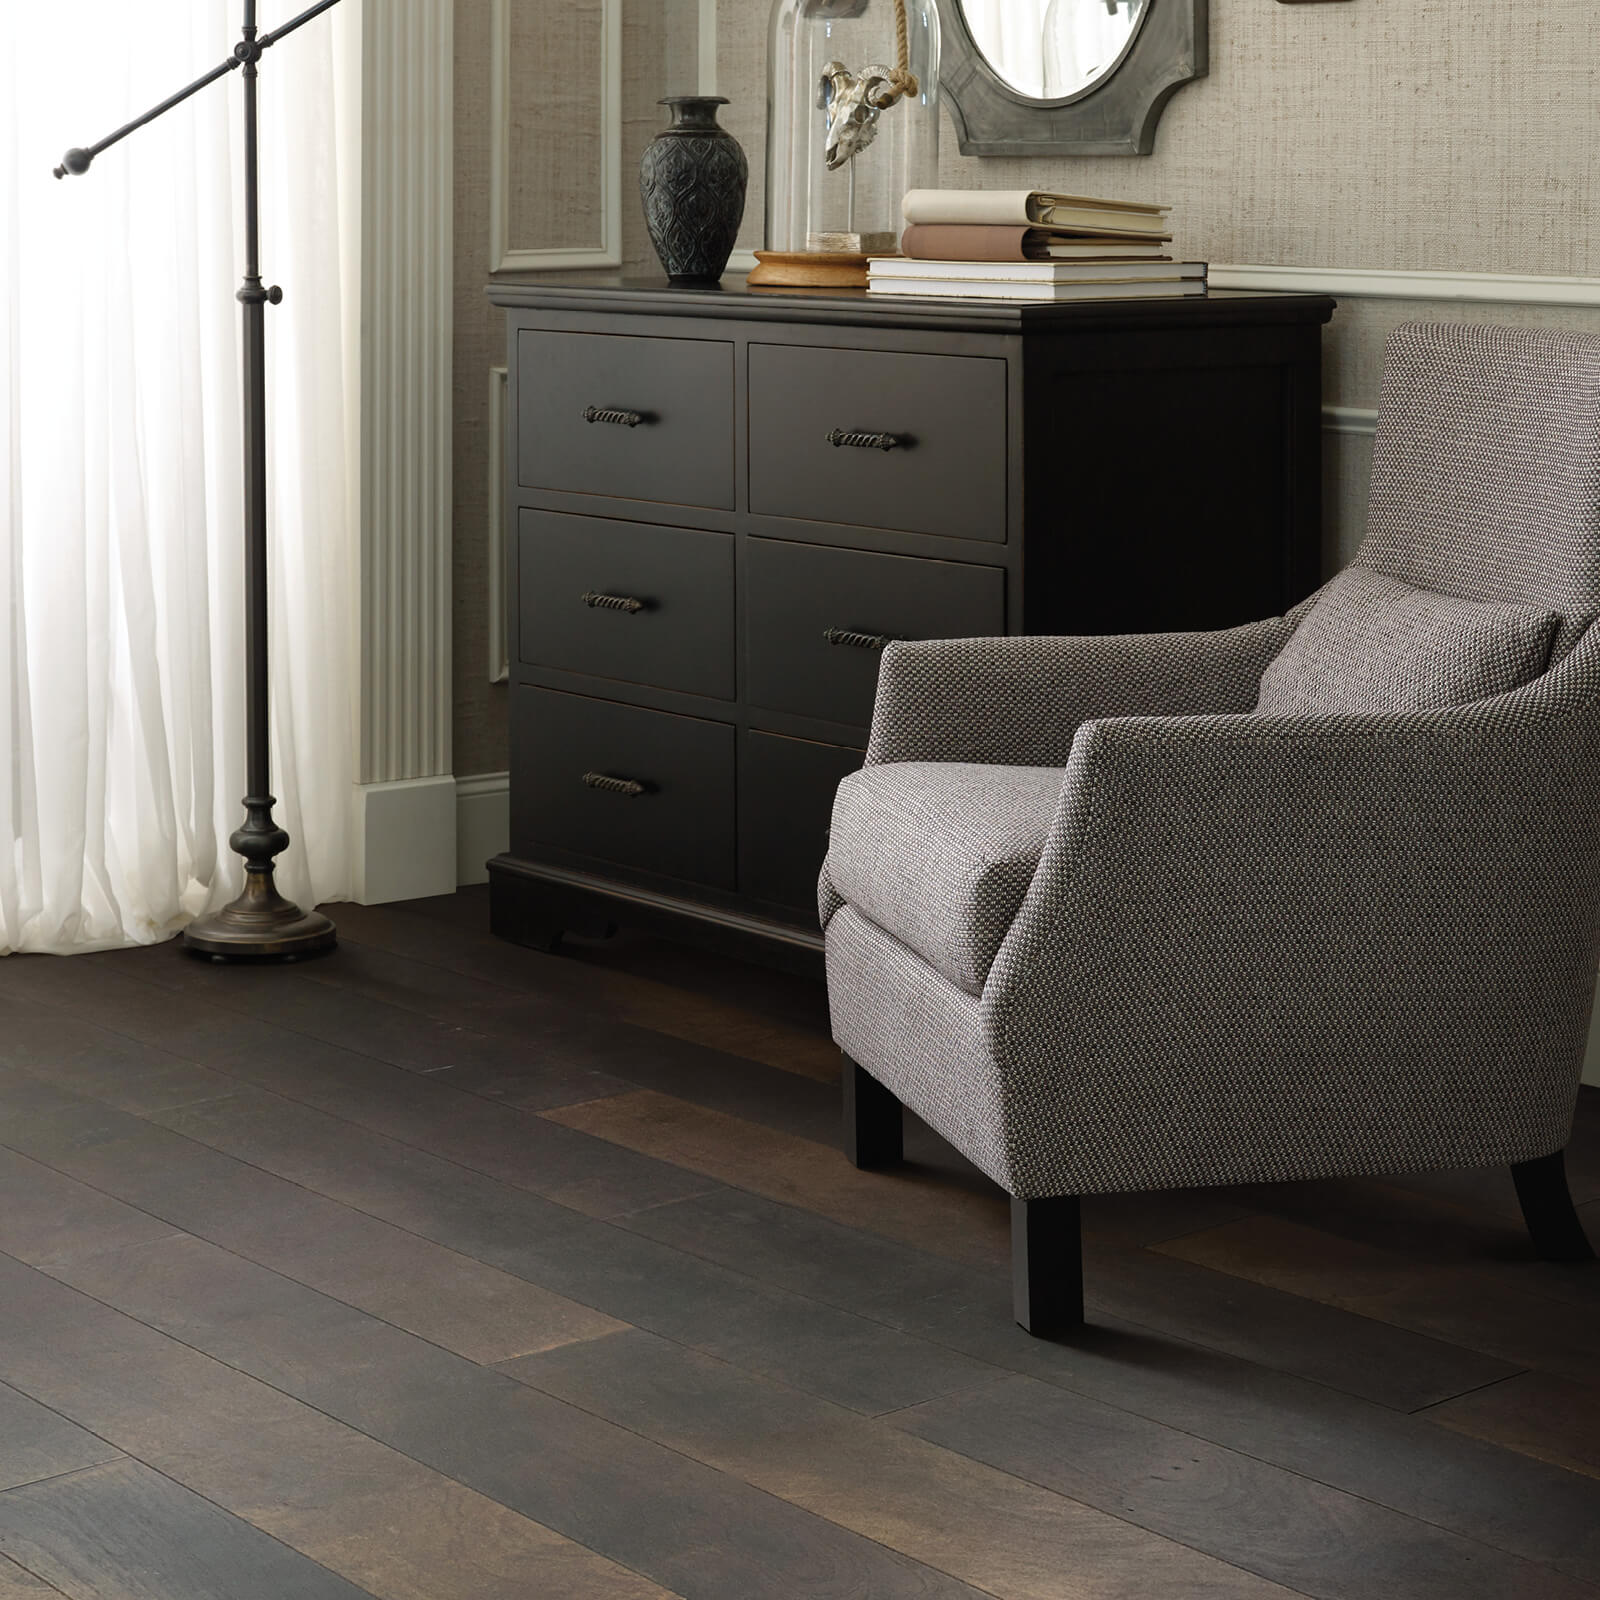 Vinyl flooring | Shelley Carpets